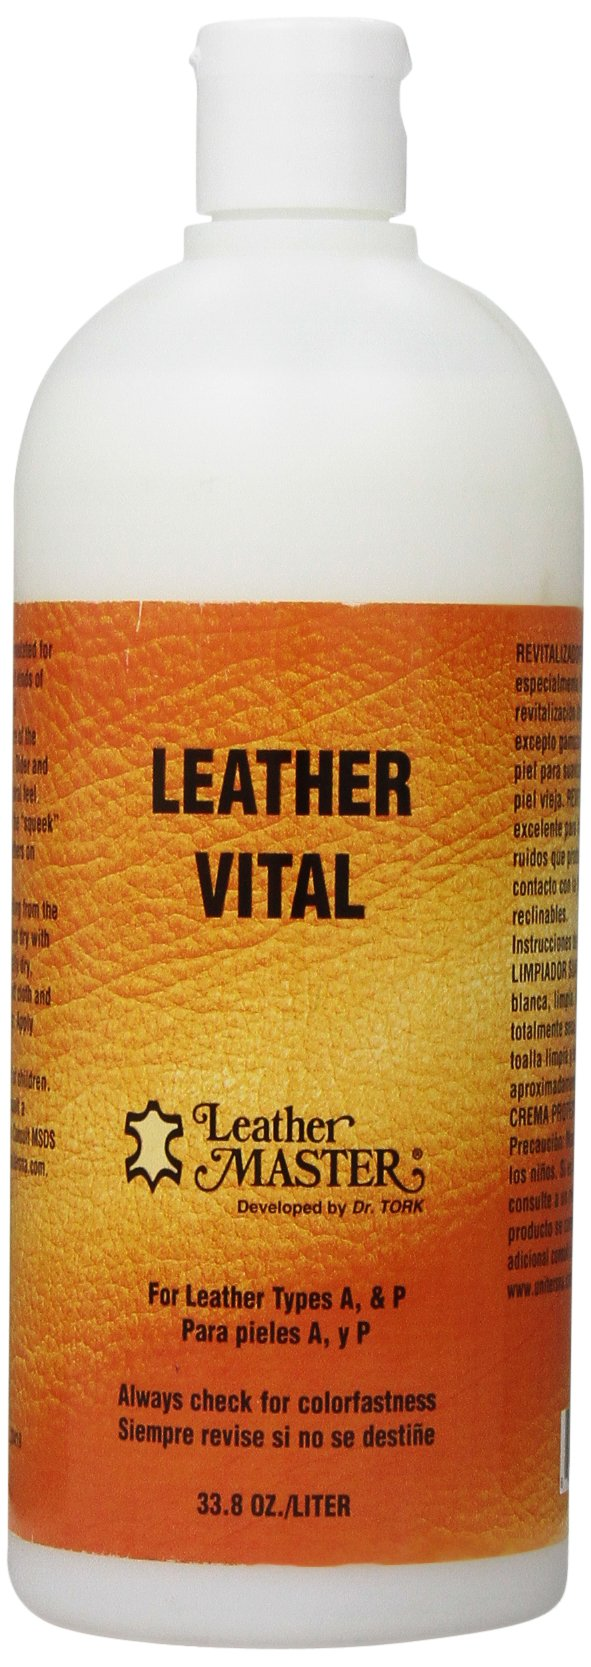 Leather Masters Leather Vital Softener and Revitalizer by Leather Masters